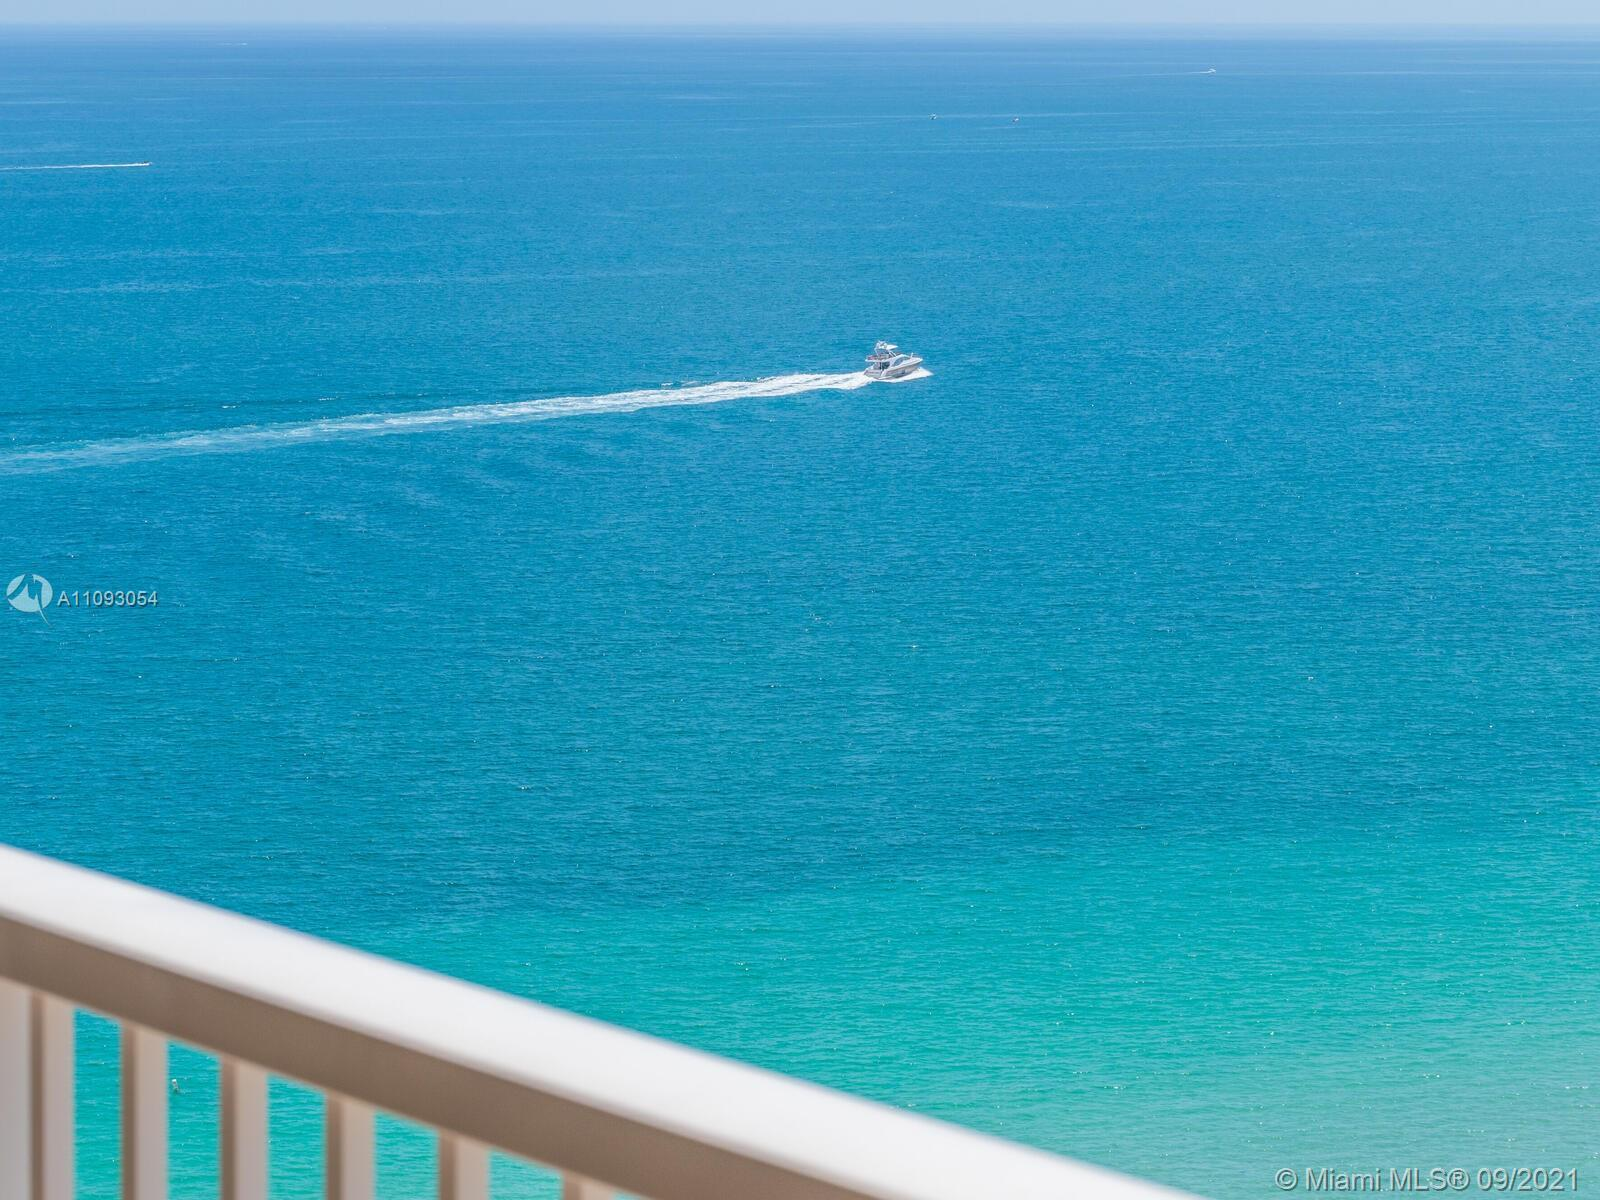 *Penthouse* 2 Br 2 Bath facing South, Views of the Ocean and Intracoastal. Two Sets Of Glass Sliders